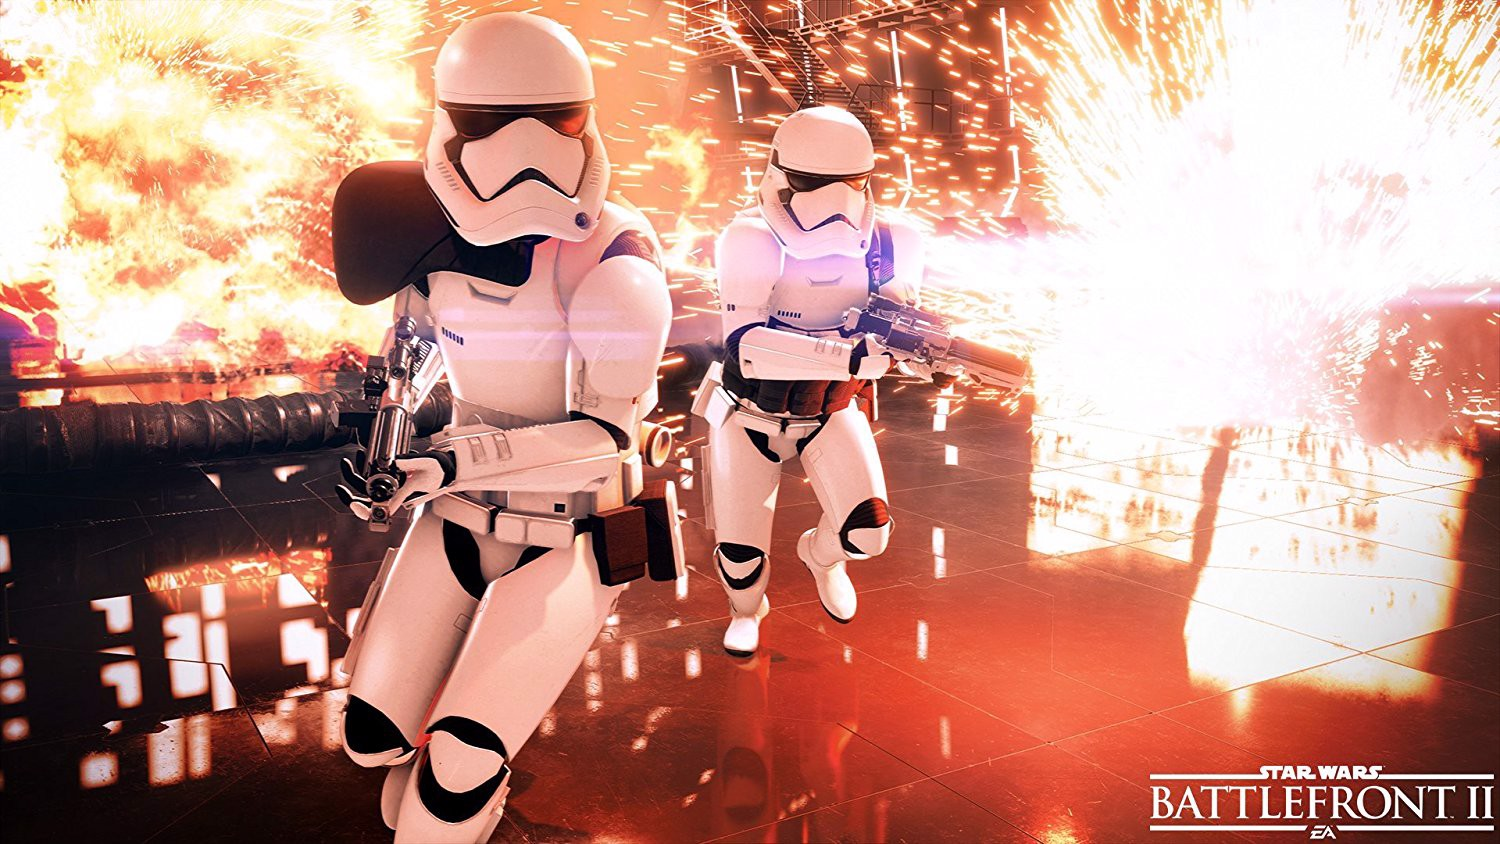 243 - Star Wars Battlefront II